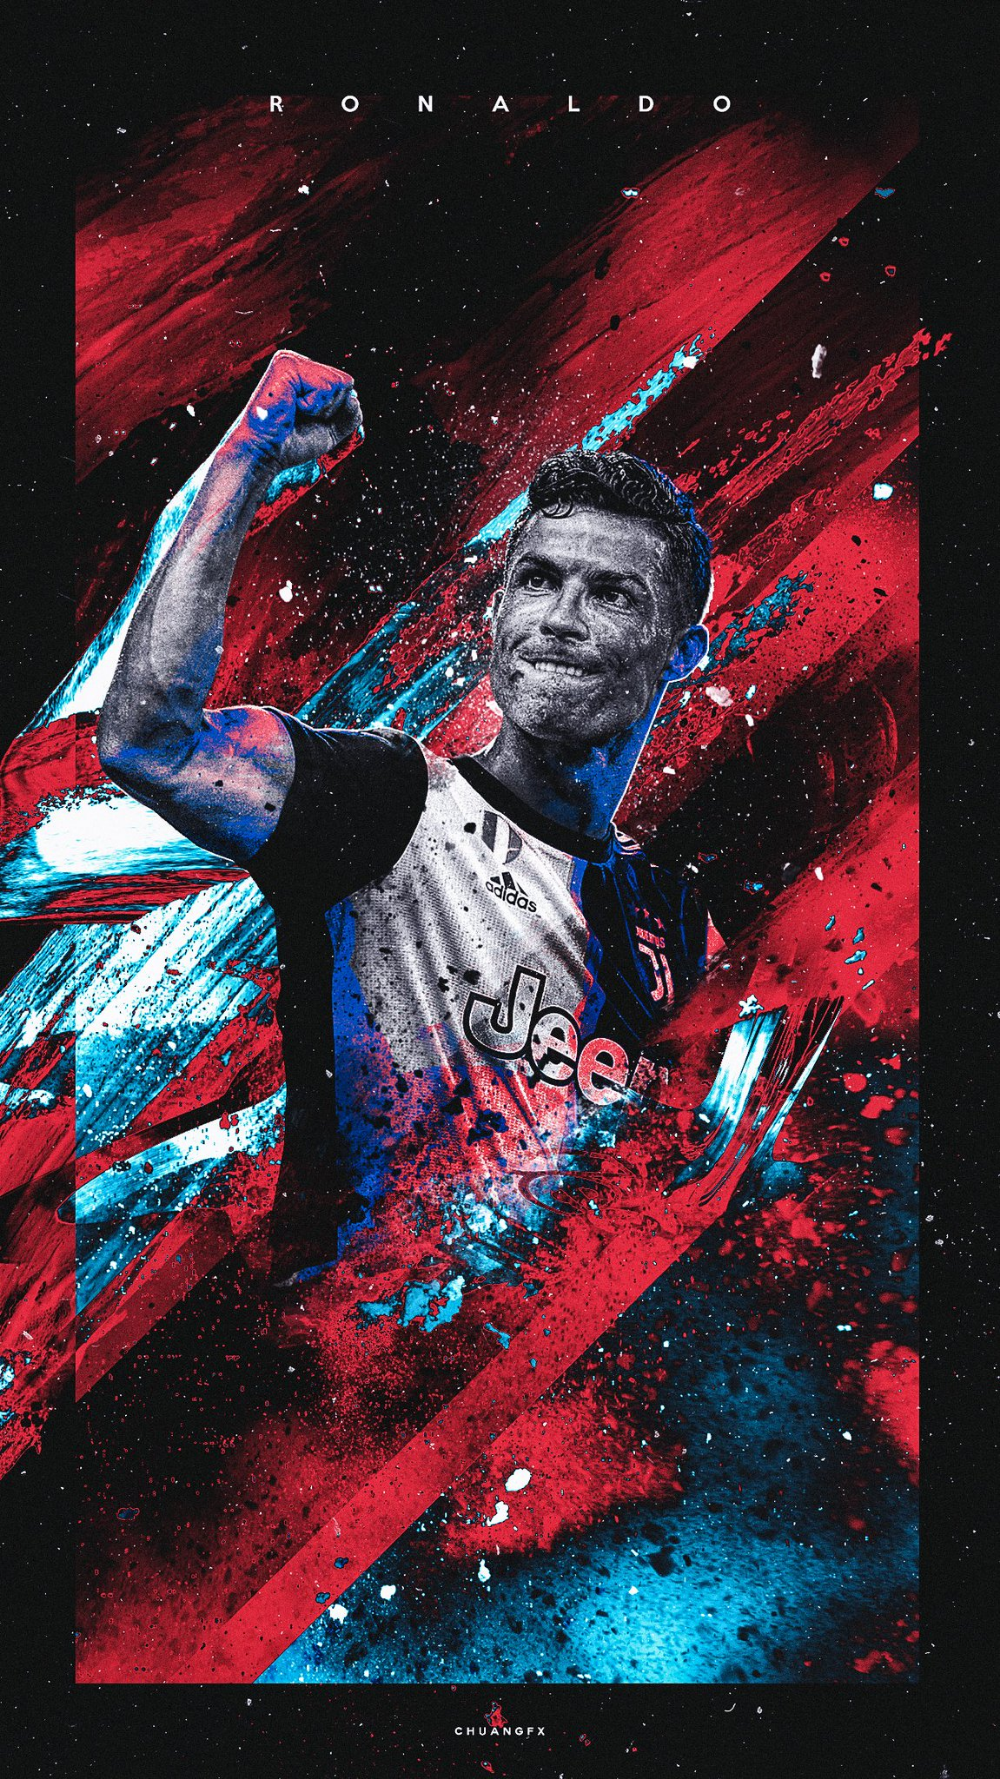 TweetDeck Cristiano ronaldo wallpapers, Cristiano